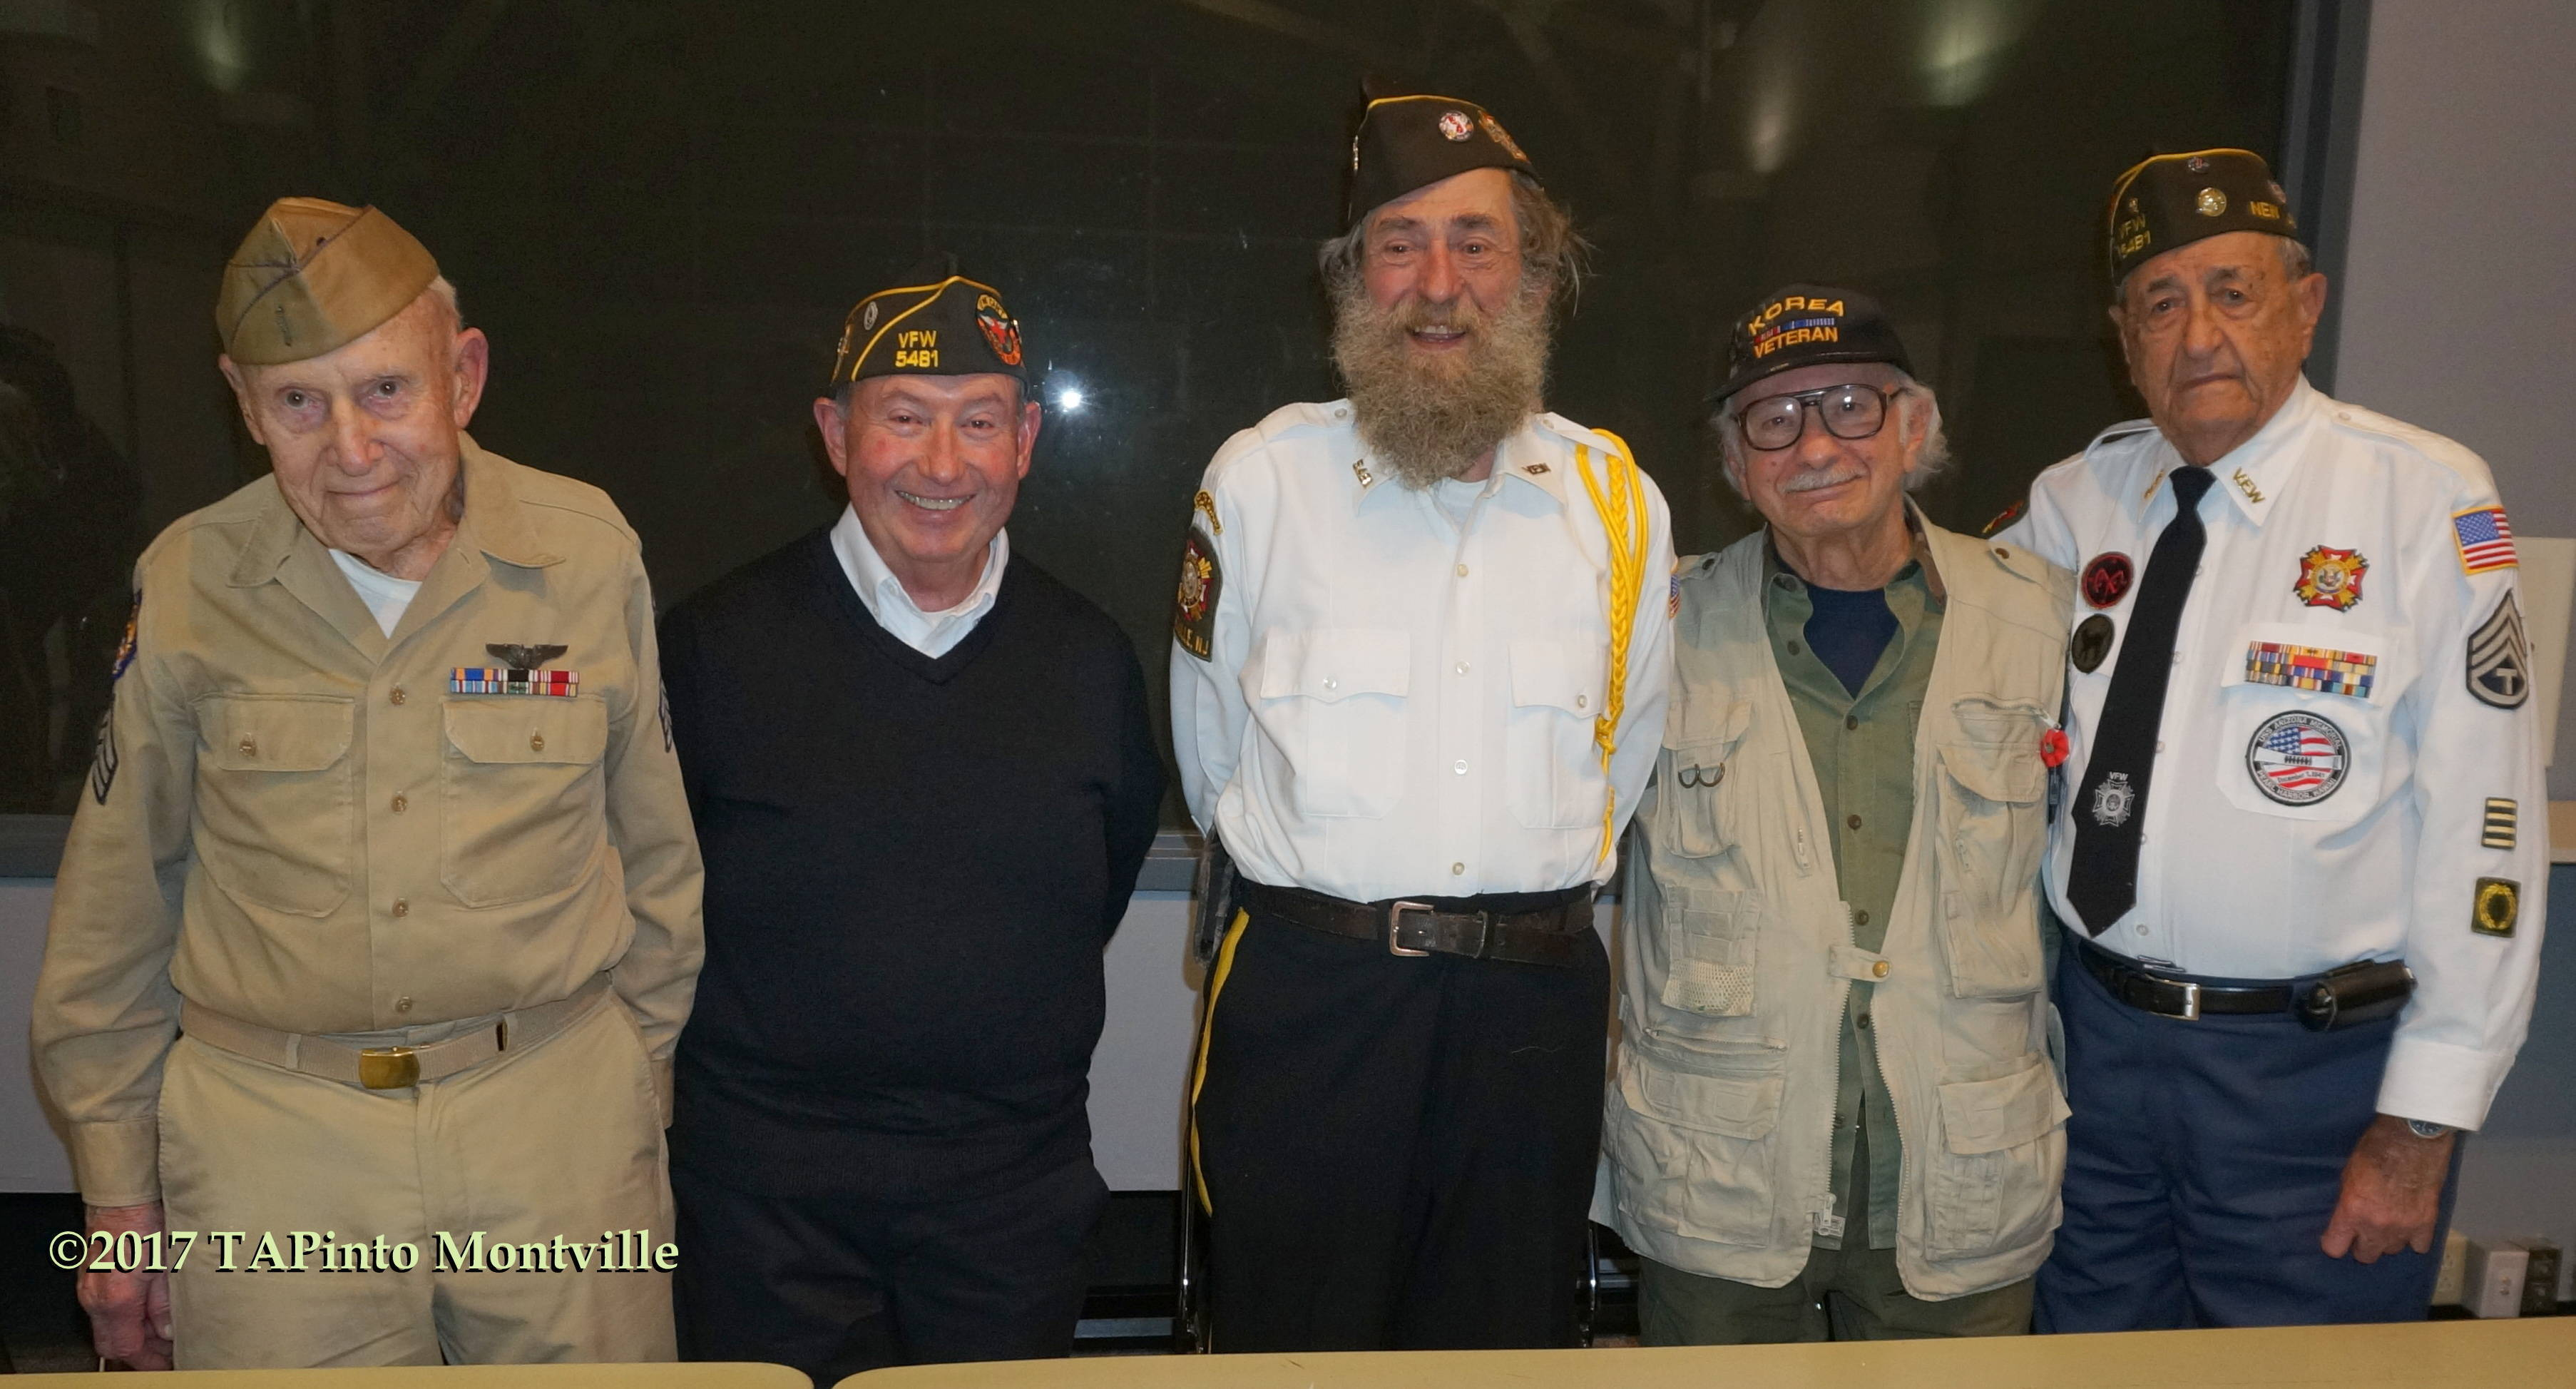 b11c22d2698f443e9441_a_Five_VFW_Post_5481_members_speak_at_the_Montville_Twp_Public_Library__2017_TAPinto_Montville.JPG